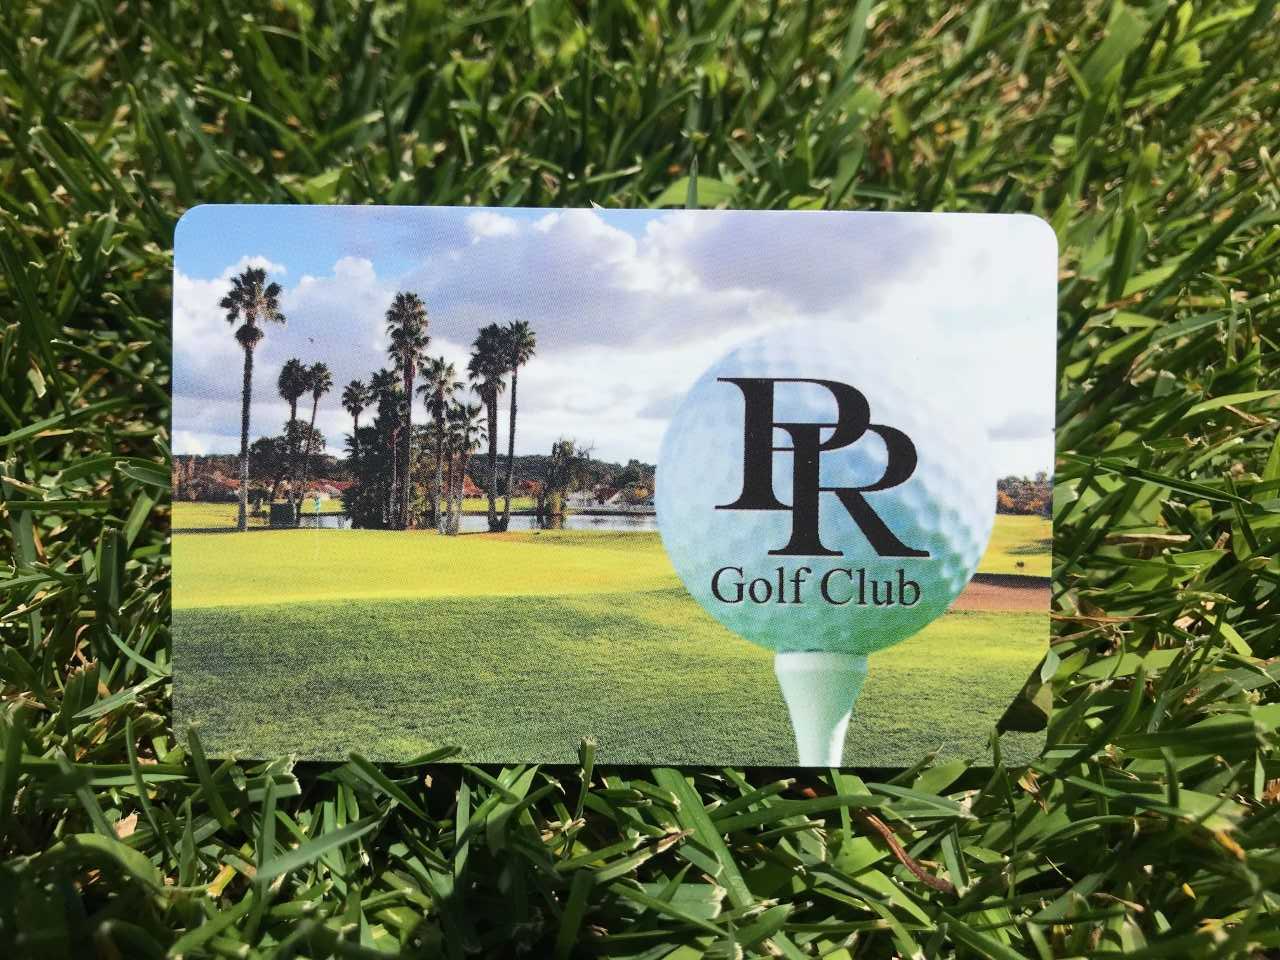 PRGC GIFT CARD FIXED